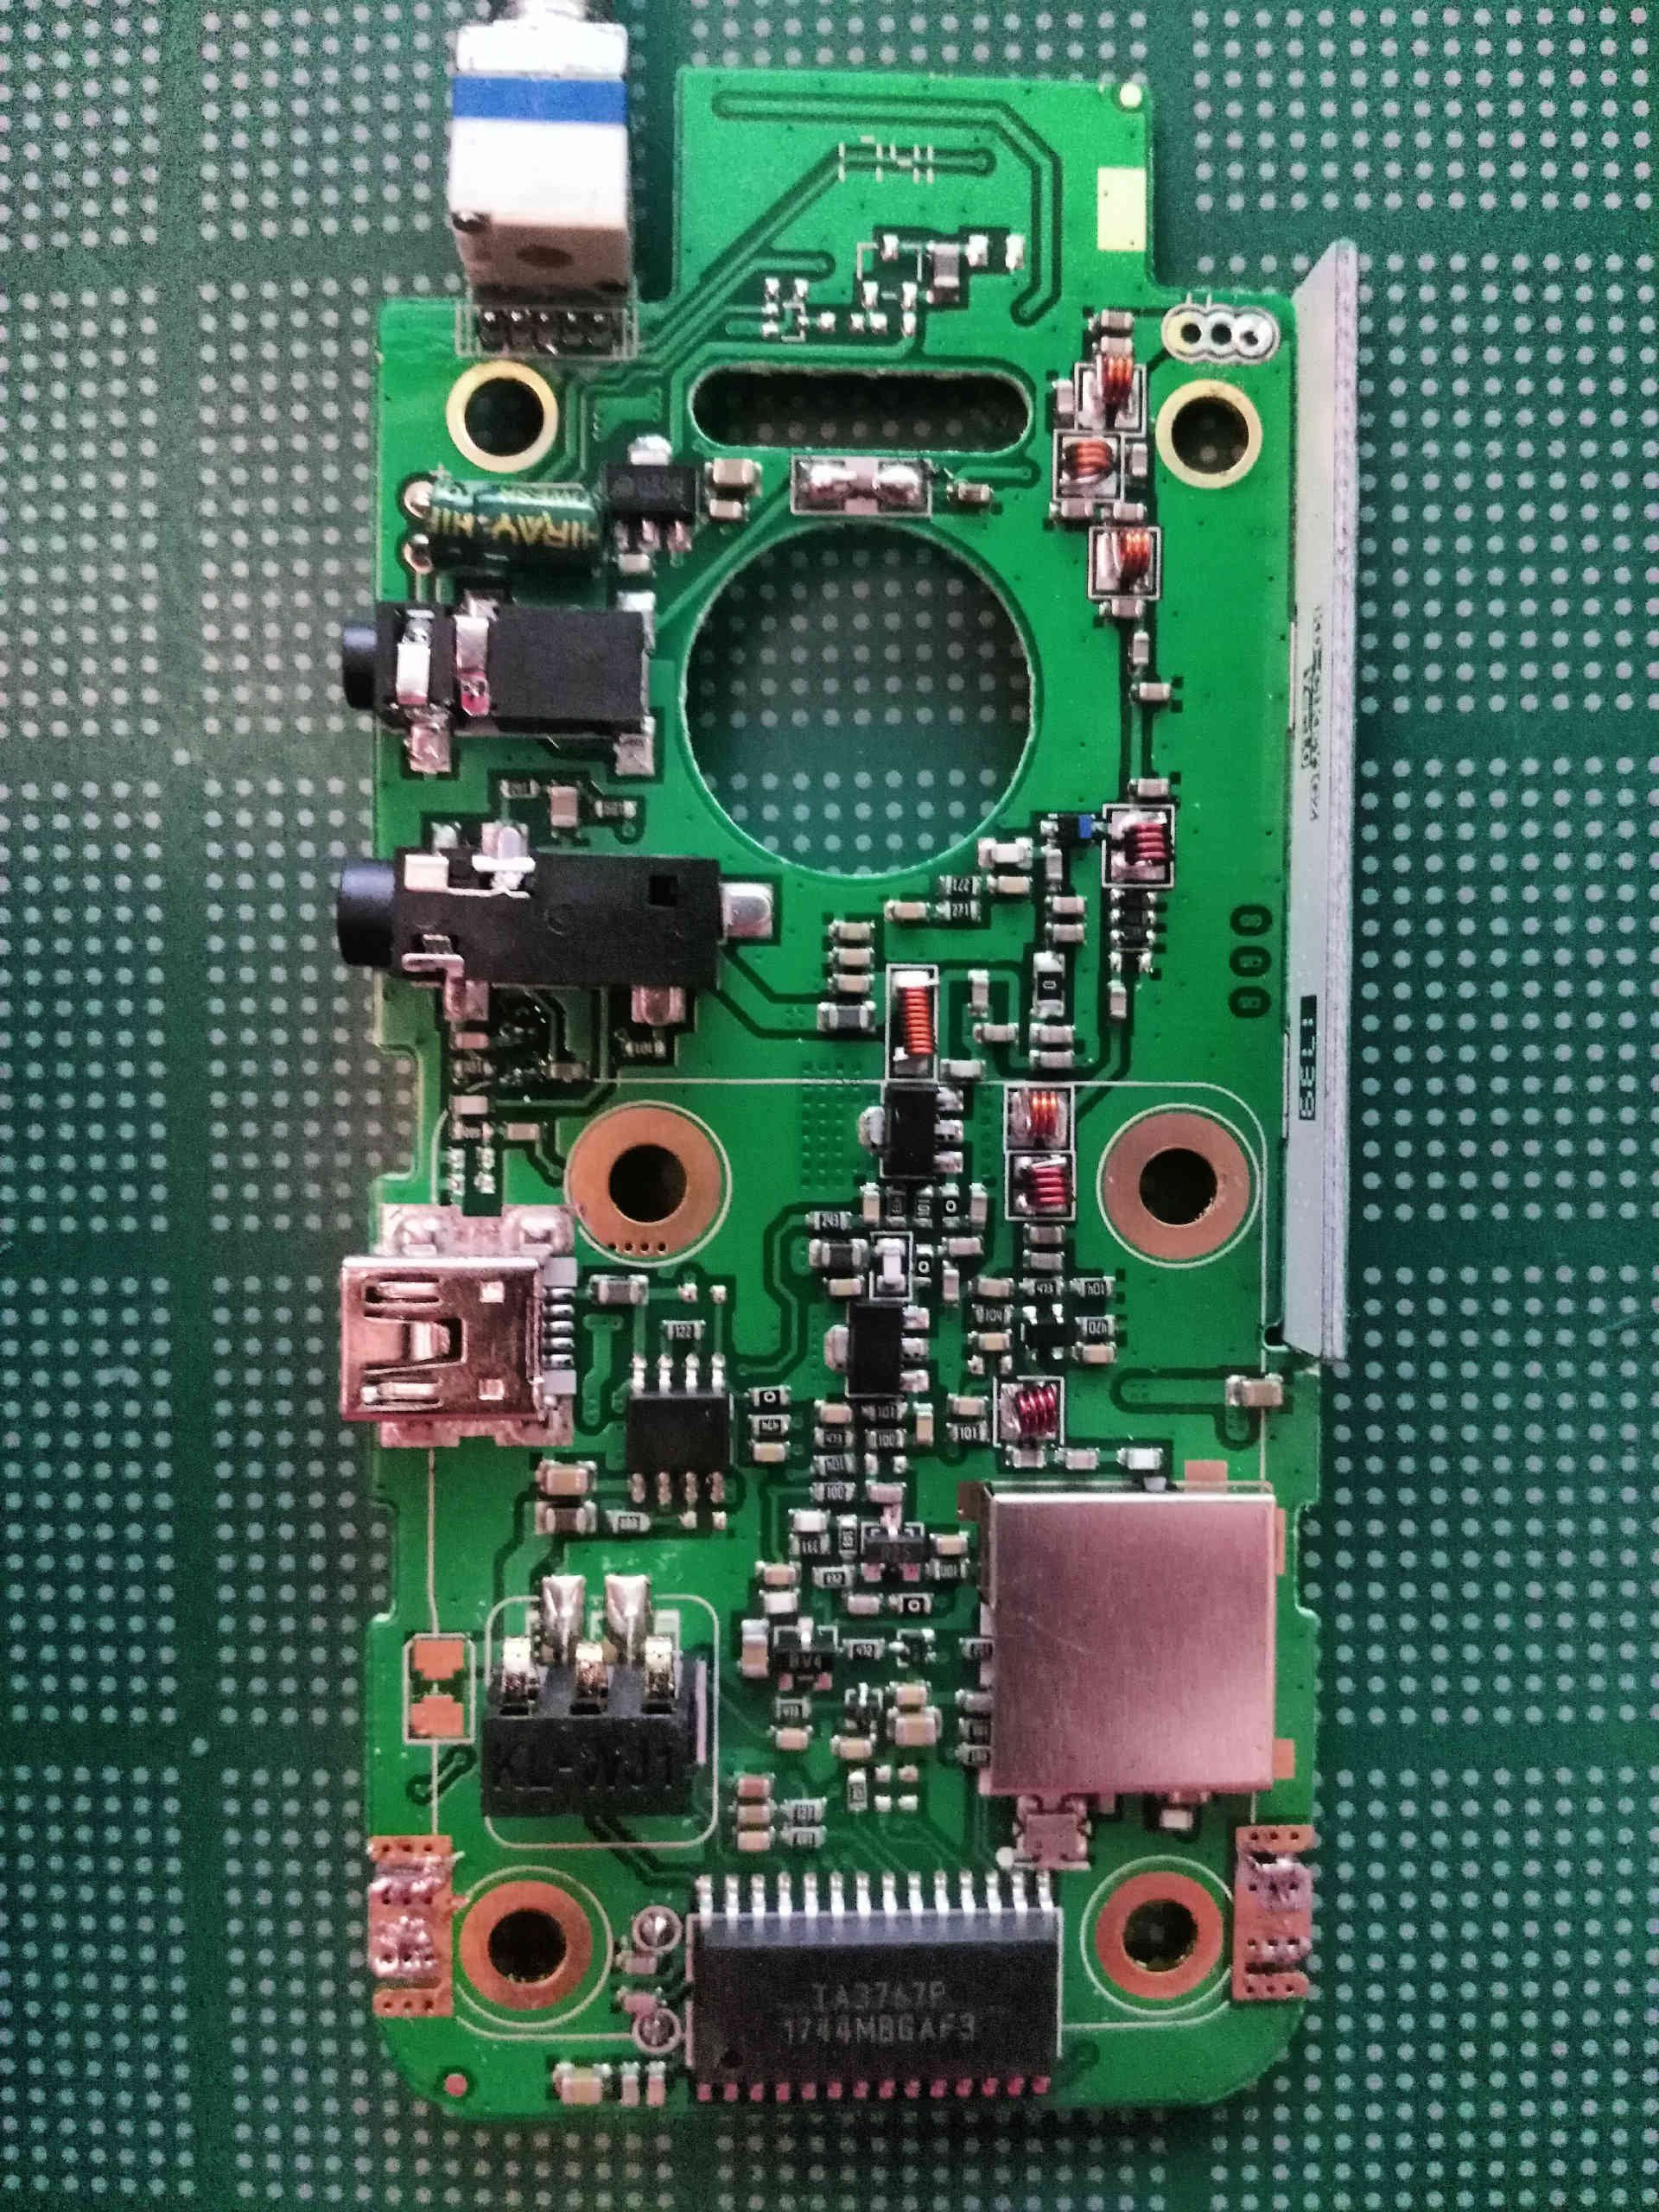 scraps/wln-kdc1-teardown/pcb-back.jpg